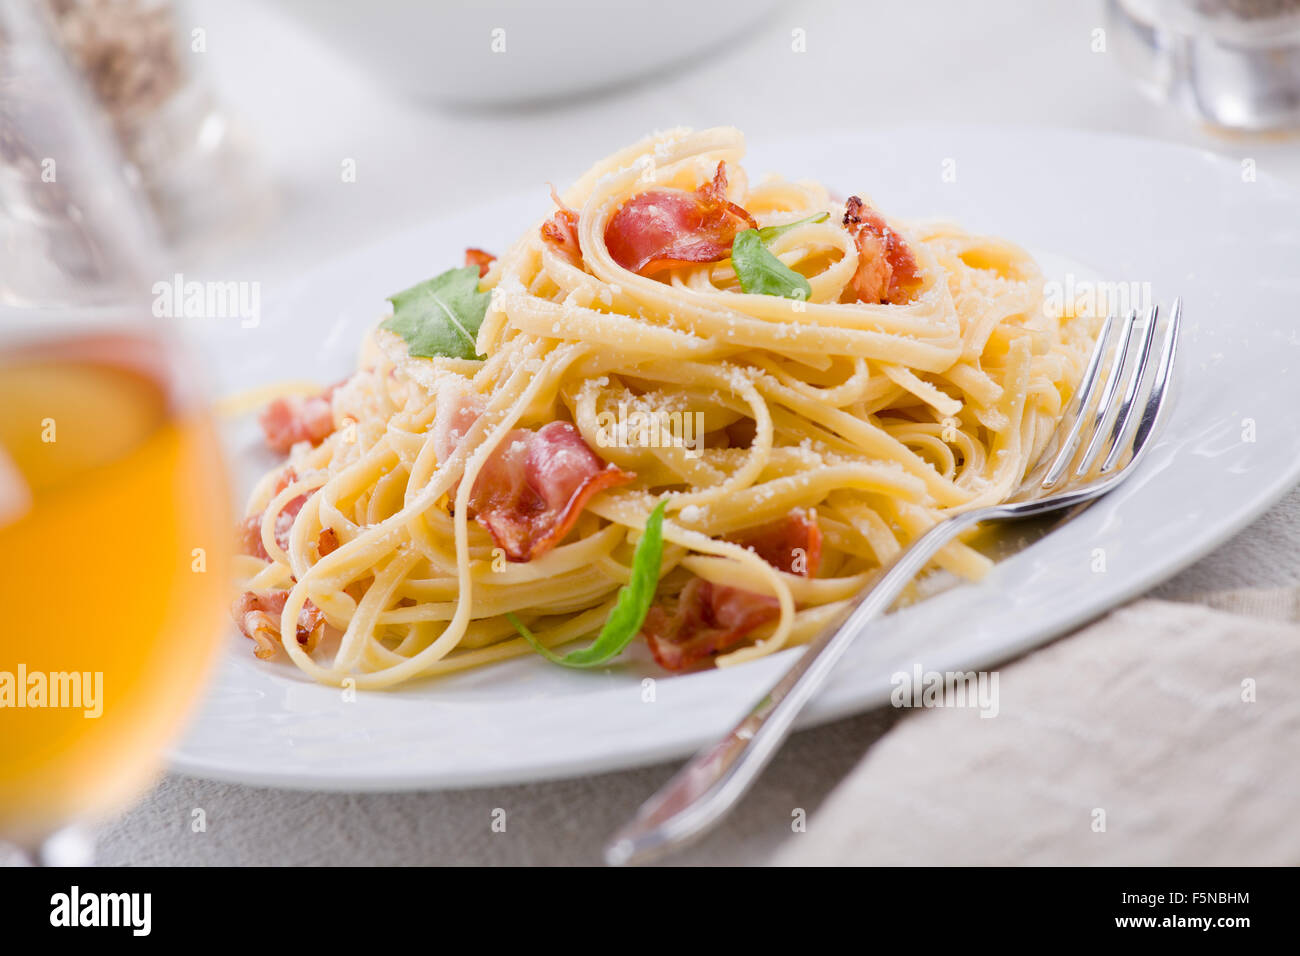 Plate of carbonara pasta with bacon and grated cheese - Stock Image